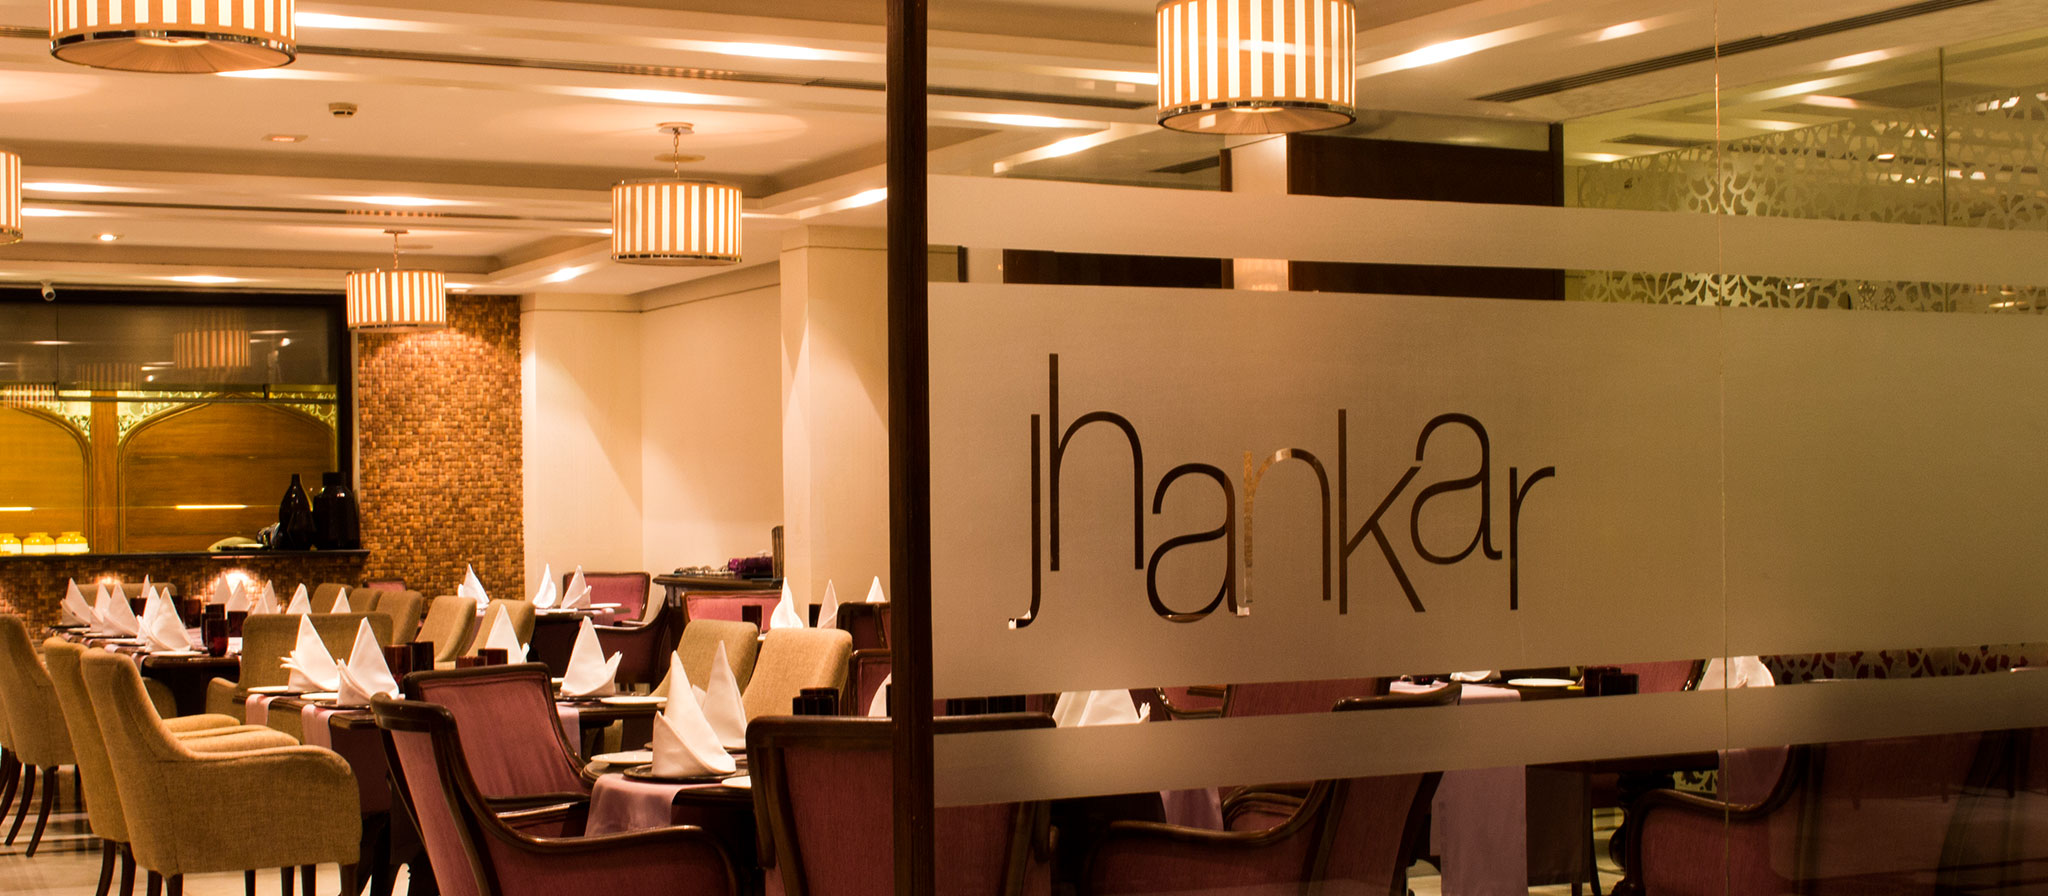 Jhankar Restaurant at The Gateway Hotel Agra - 1